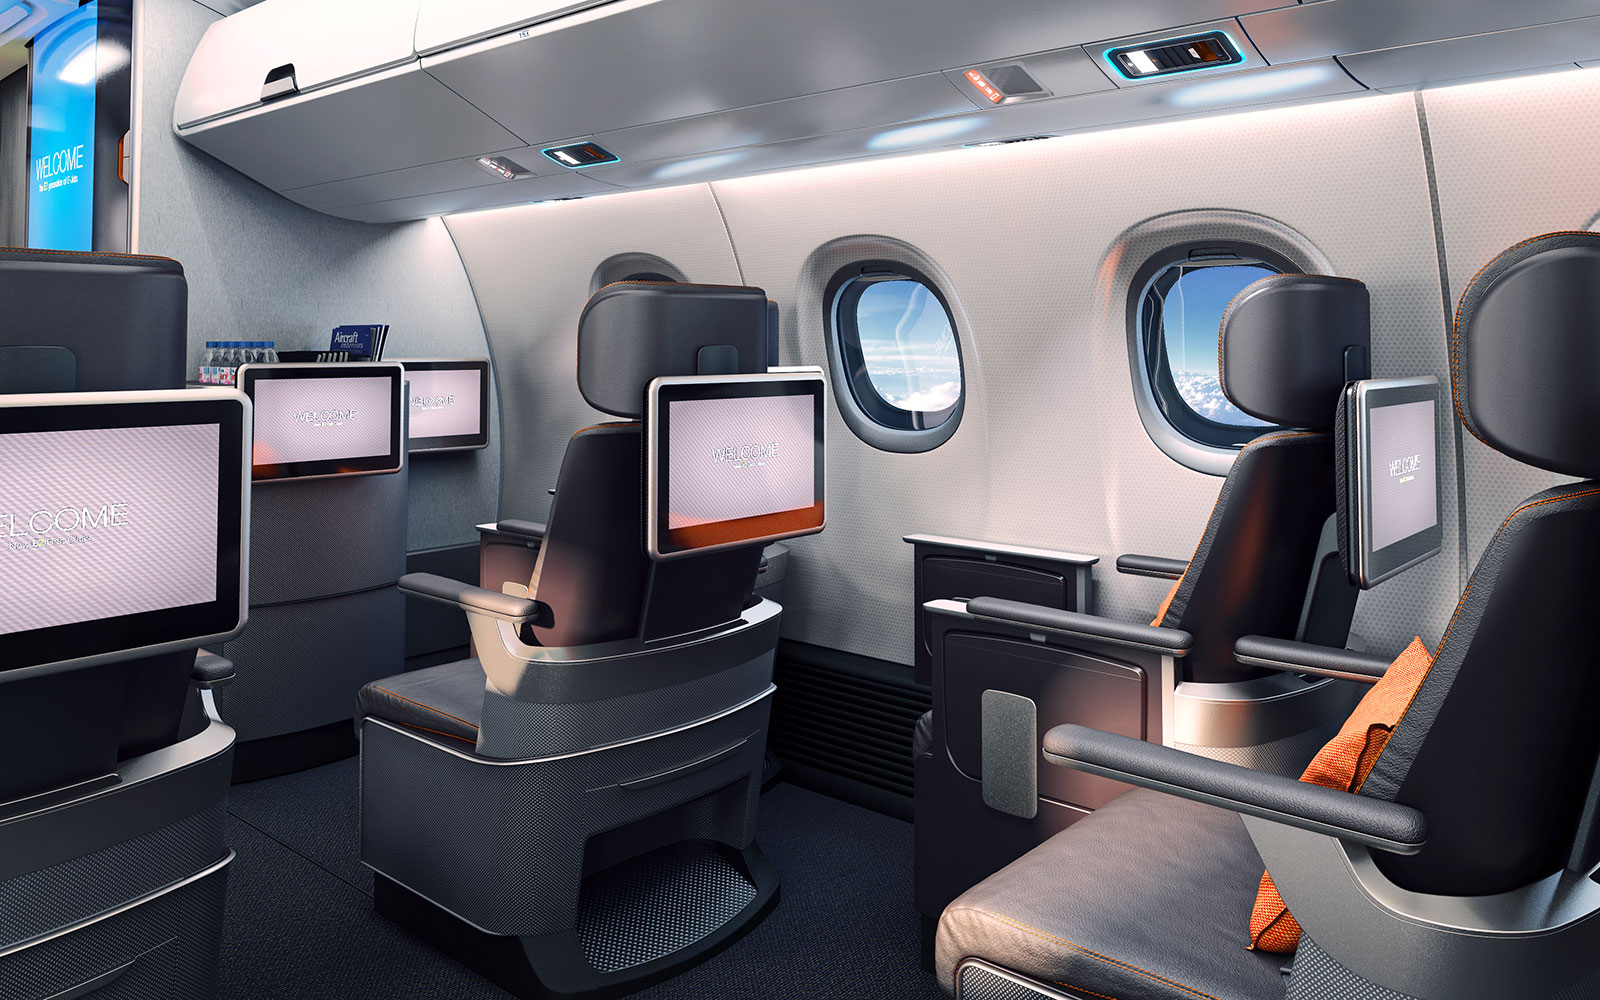 15 Craziest Airplane Cabins of the Future: Embraer E2 Project – by Priestmangoode